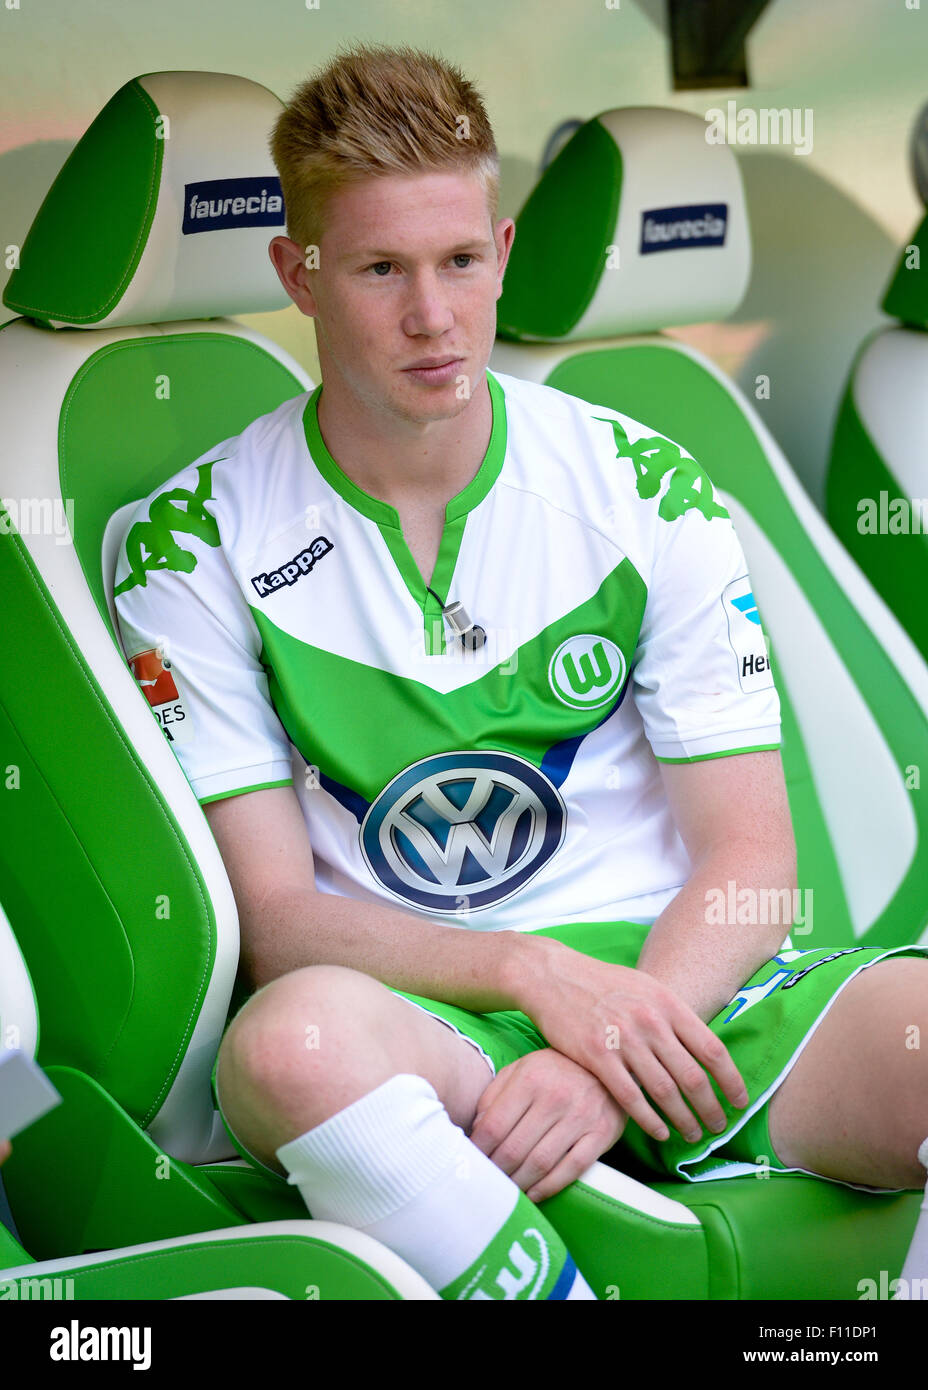 super popular 9be35 098a6 Wolfsburg, Germany. 5th Aug, 2015. VfL Wolfsburg player ...